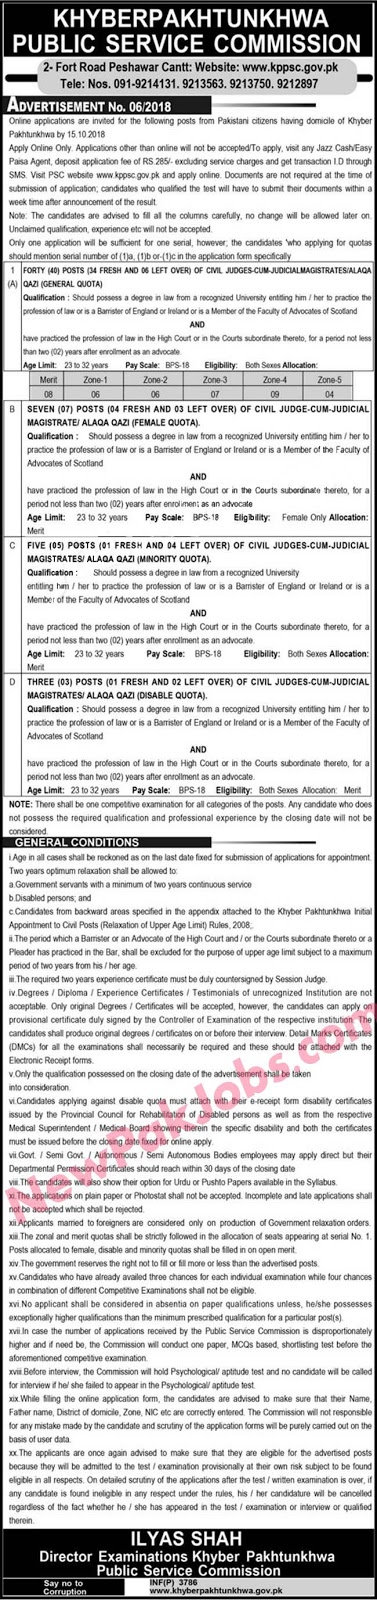 kppsc-jobs-september-2018-jobs